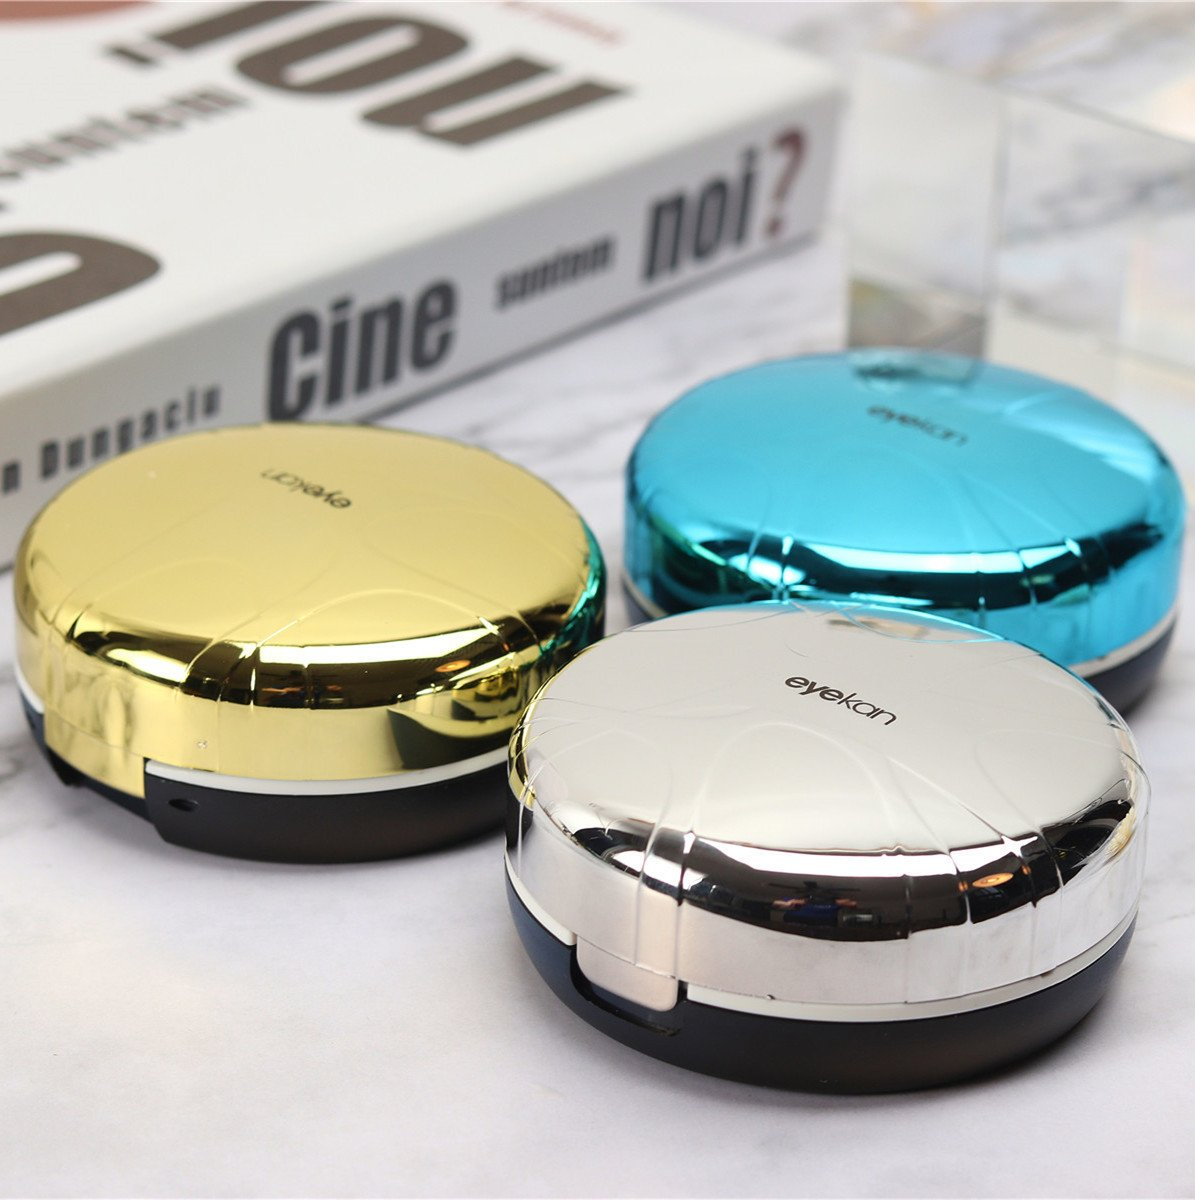 Contact lens case cleaner / frog ultrasonic contact lens cleaner - ilabar